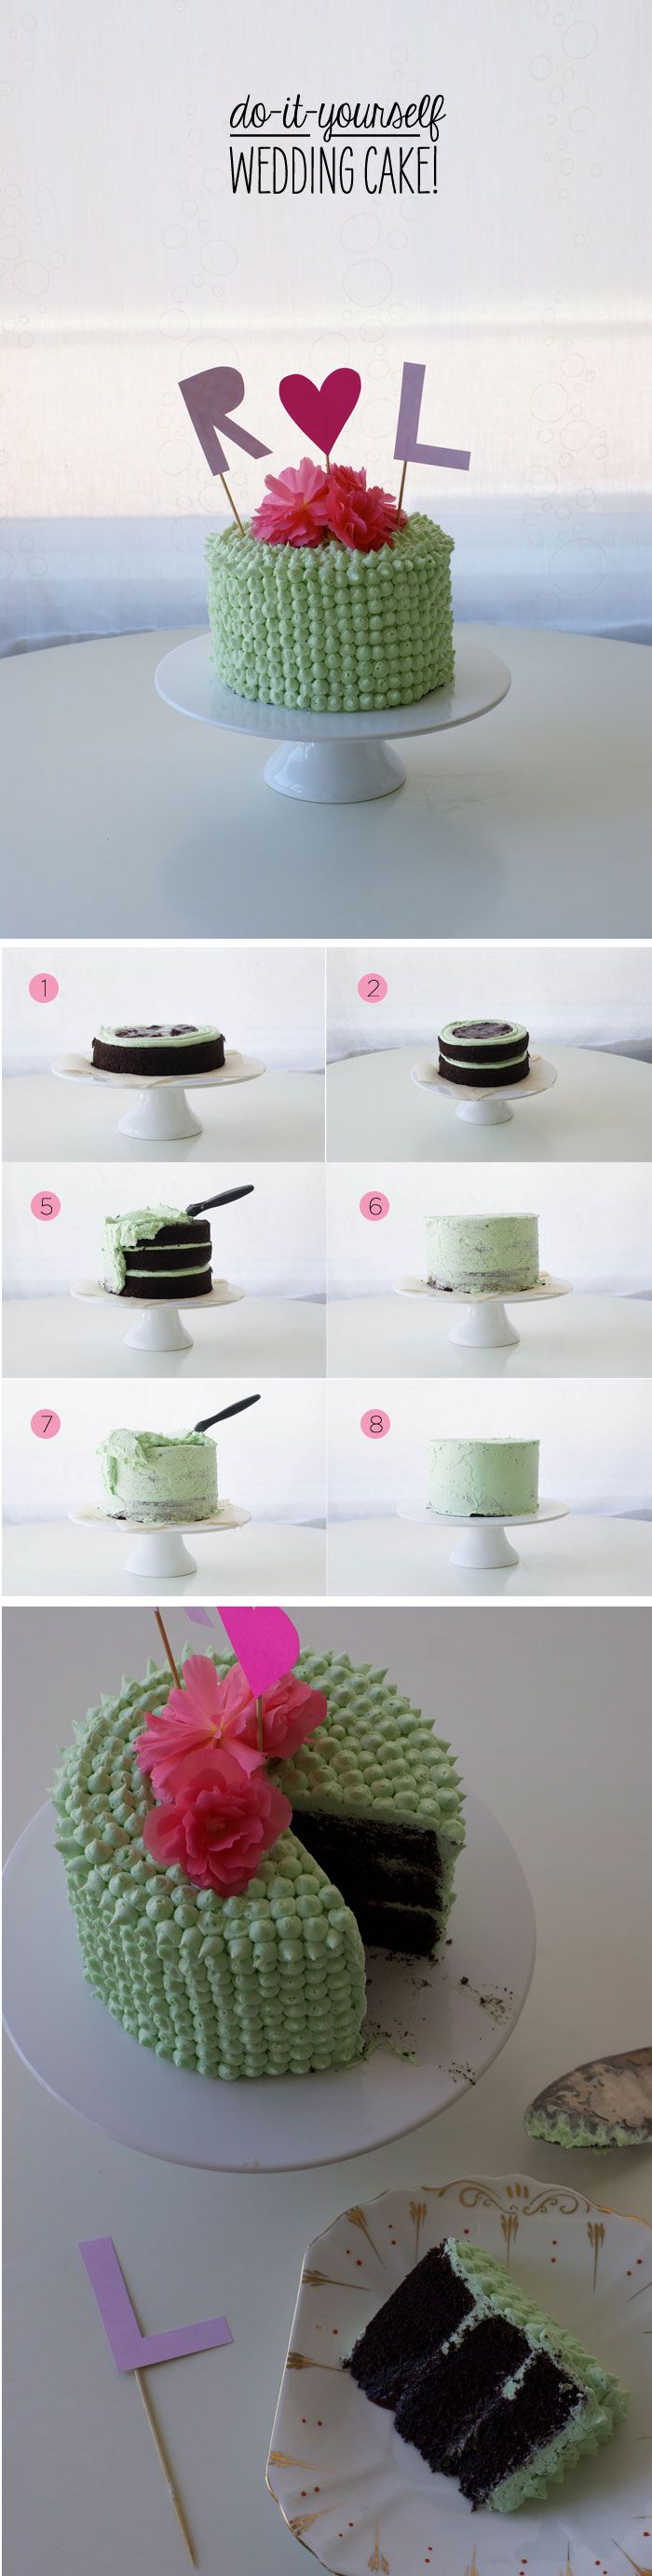 easy do it yourself wedding cake ideas 119 best images about bridal shower decor ideas on 13811